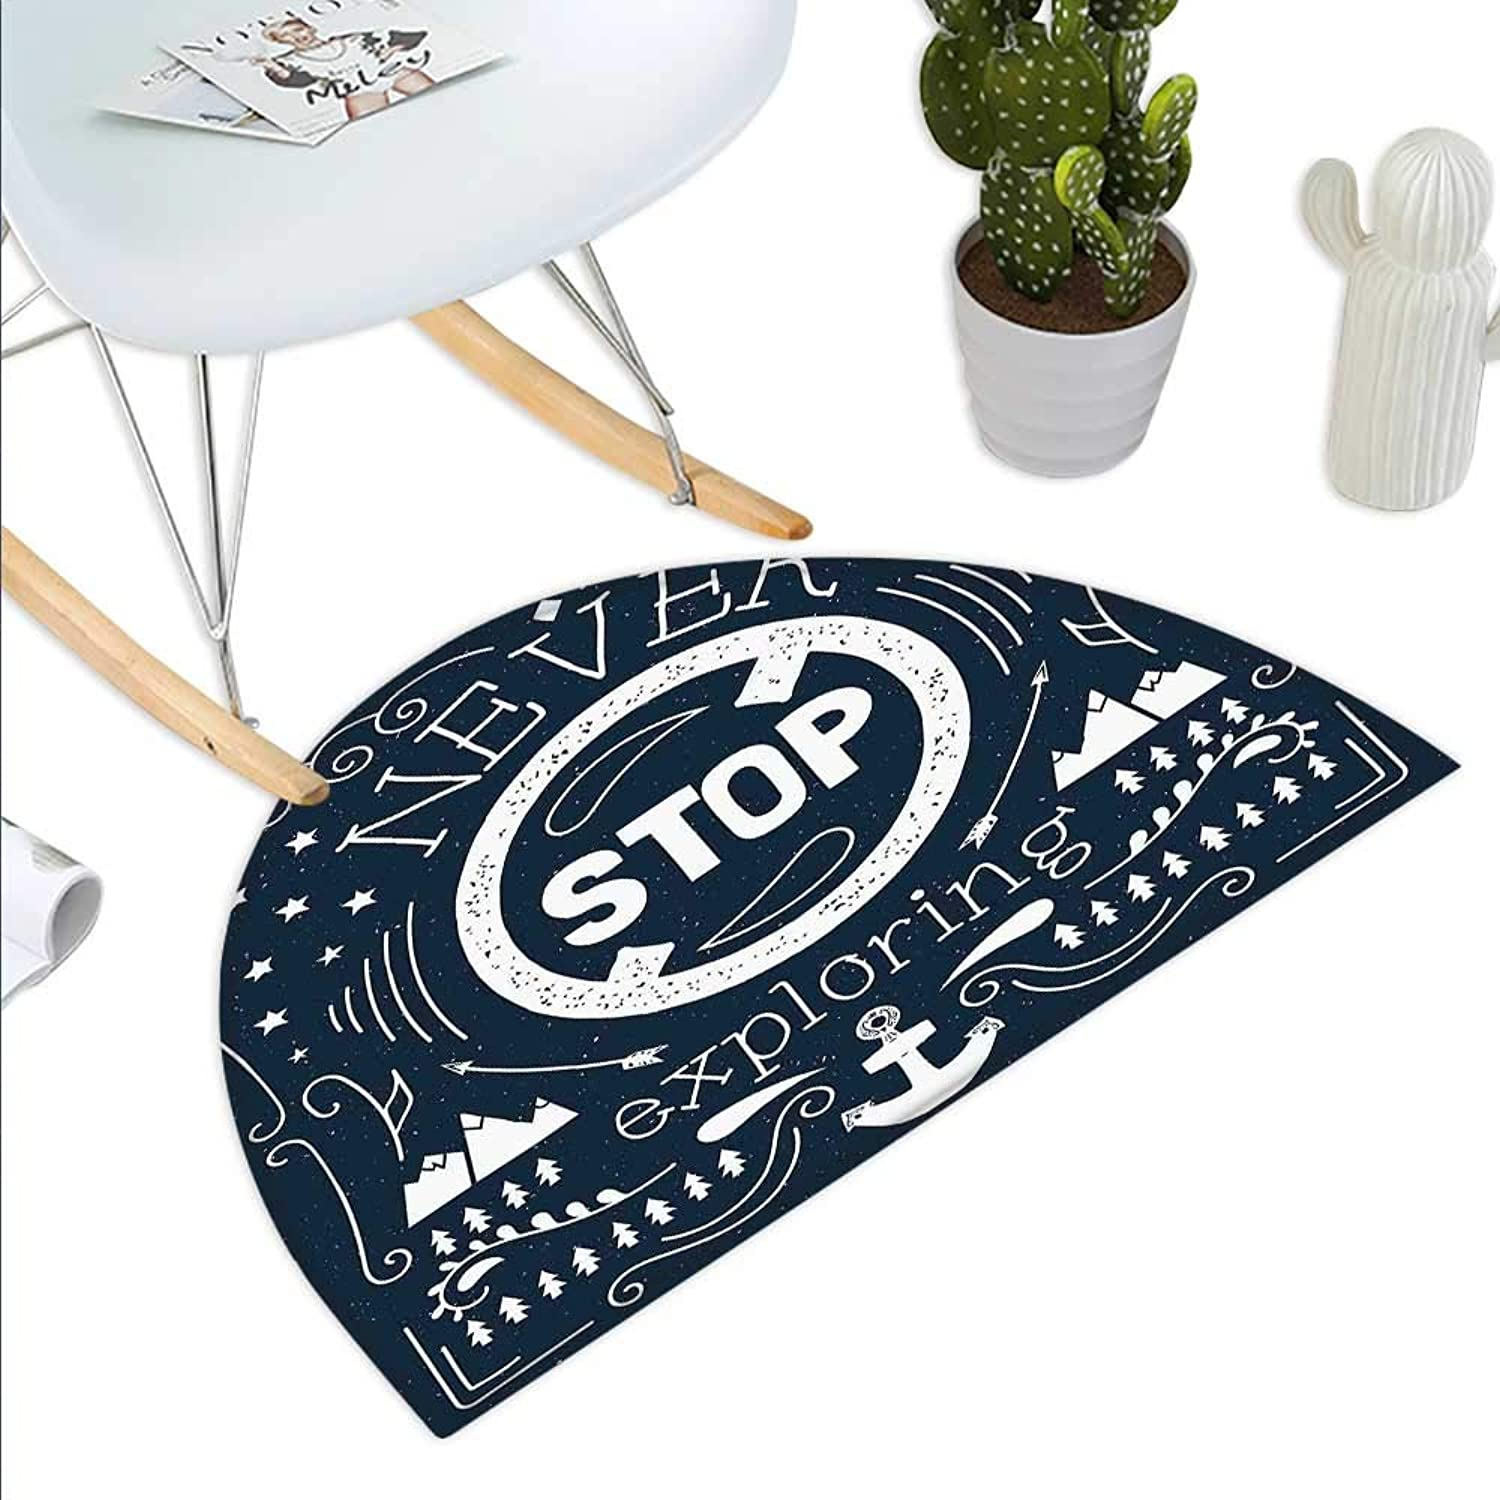 Quote Semicircle Doormat Anchor and Star Silhouette with Never Stop Exploring Slogan on Dark Backdrop Halfmoon doormats H 43.3  xD 64.9  Dark bluee and White